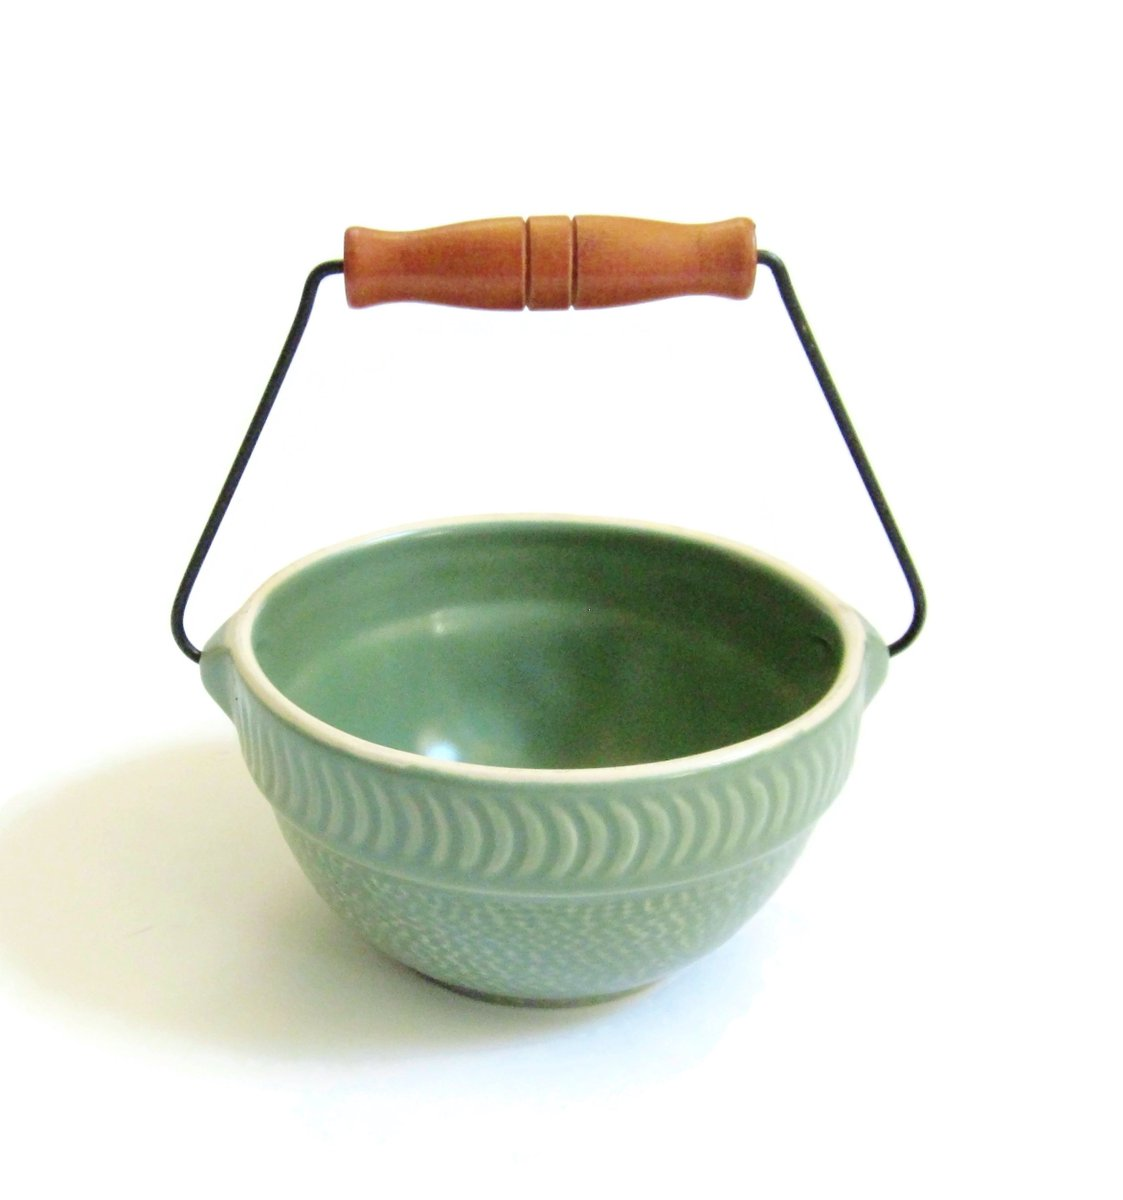 Country Crock Berry Bowl Tender Heart Treasures 1990's Bail-wire & Wood Handled Small Decorative Matte Or Satin Glazed Green Stoneware https://etsy.me/31VTRcD #housewares #bowl #green #entryway #countrybowl #crockbowl #farmhousebowl #berrybowl #1990scrockbowl